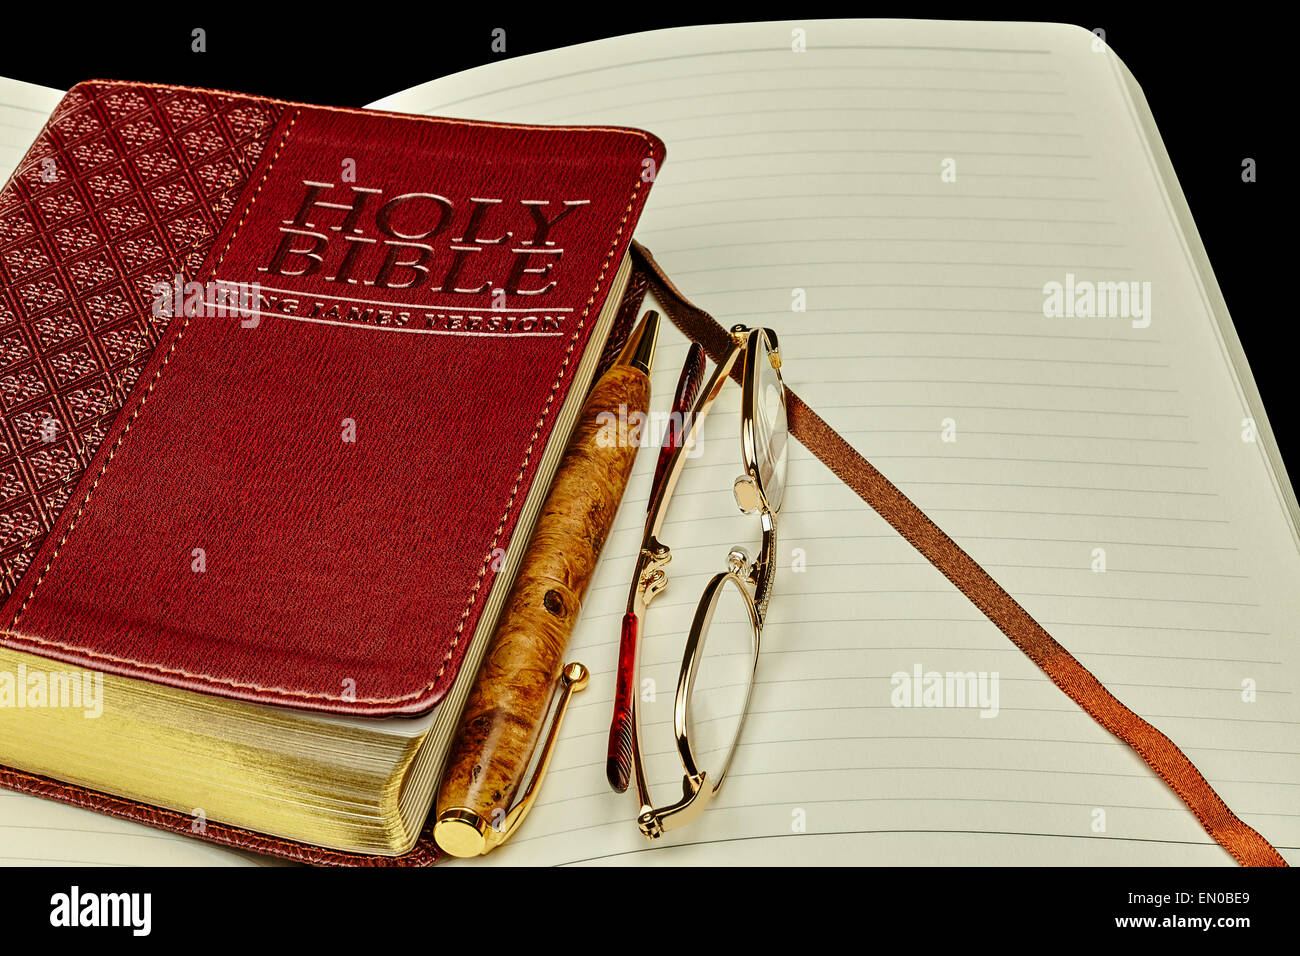 closed generic bible book with personal study journal and business